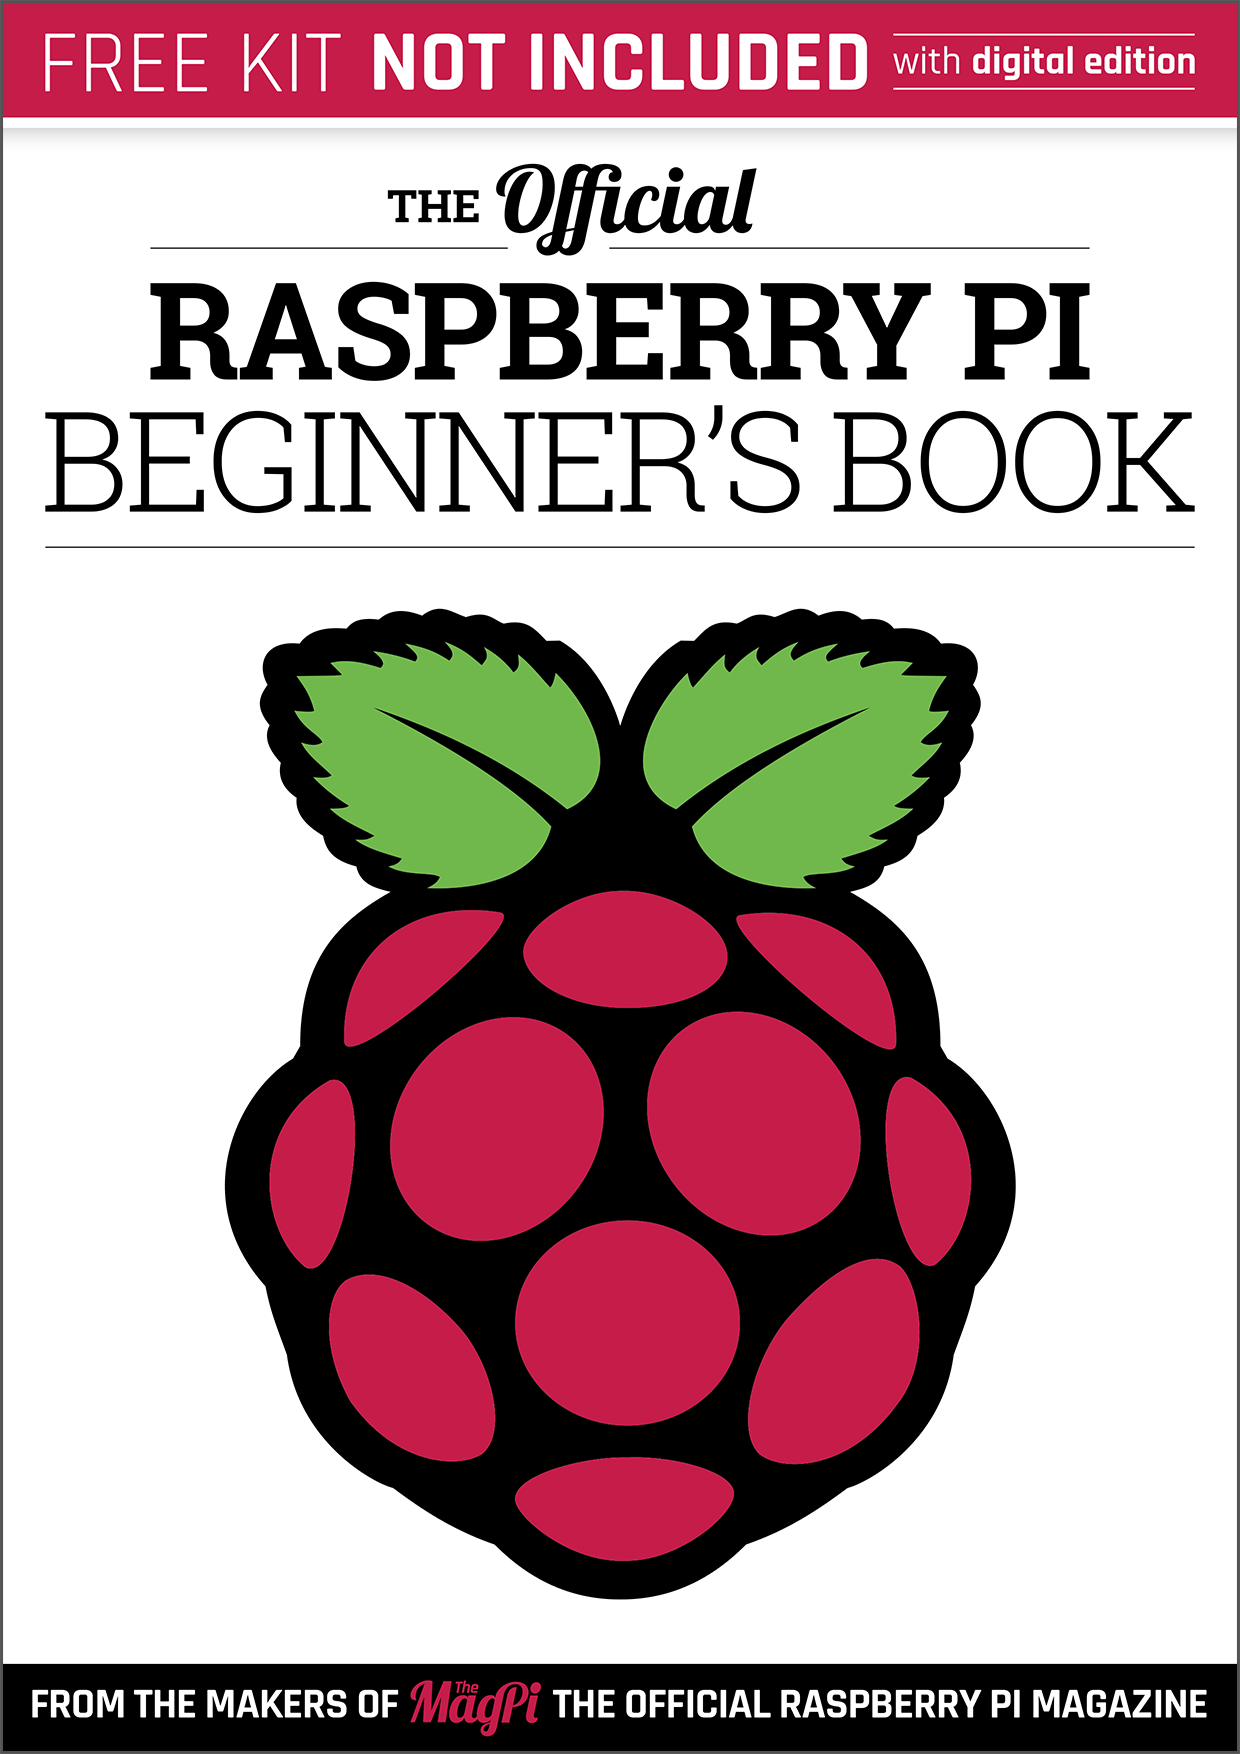 Pi-Beginners-cover-DIGITAL-1.png